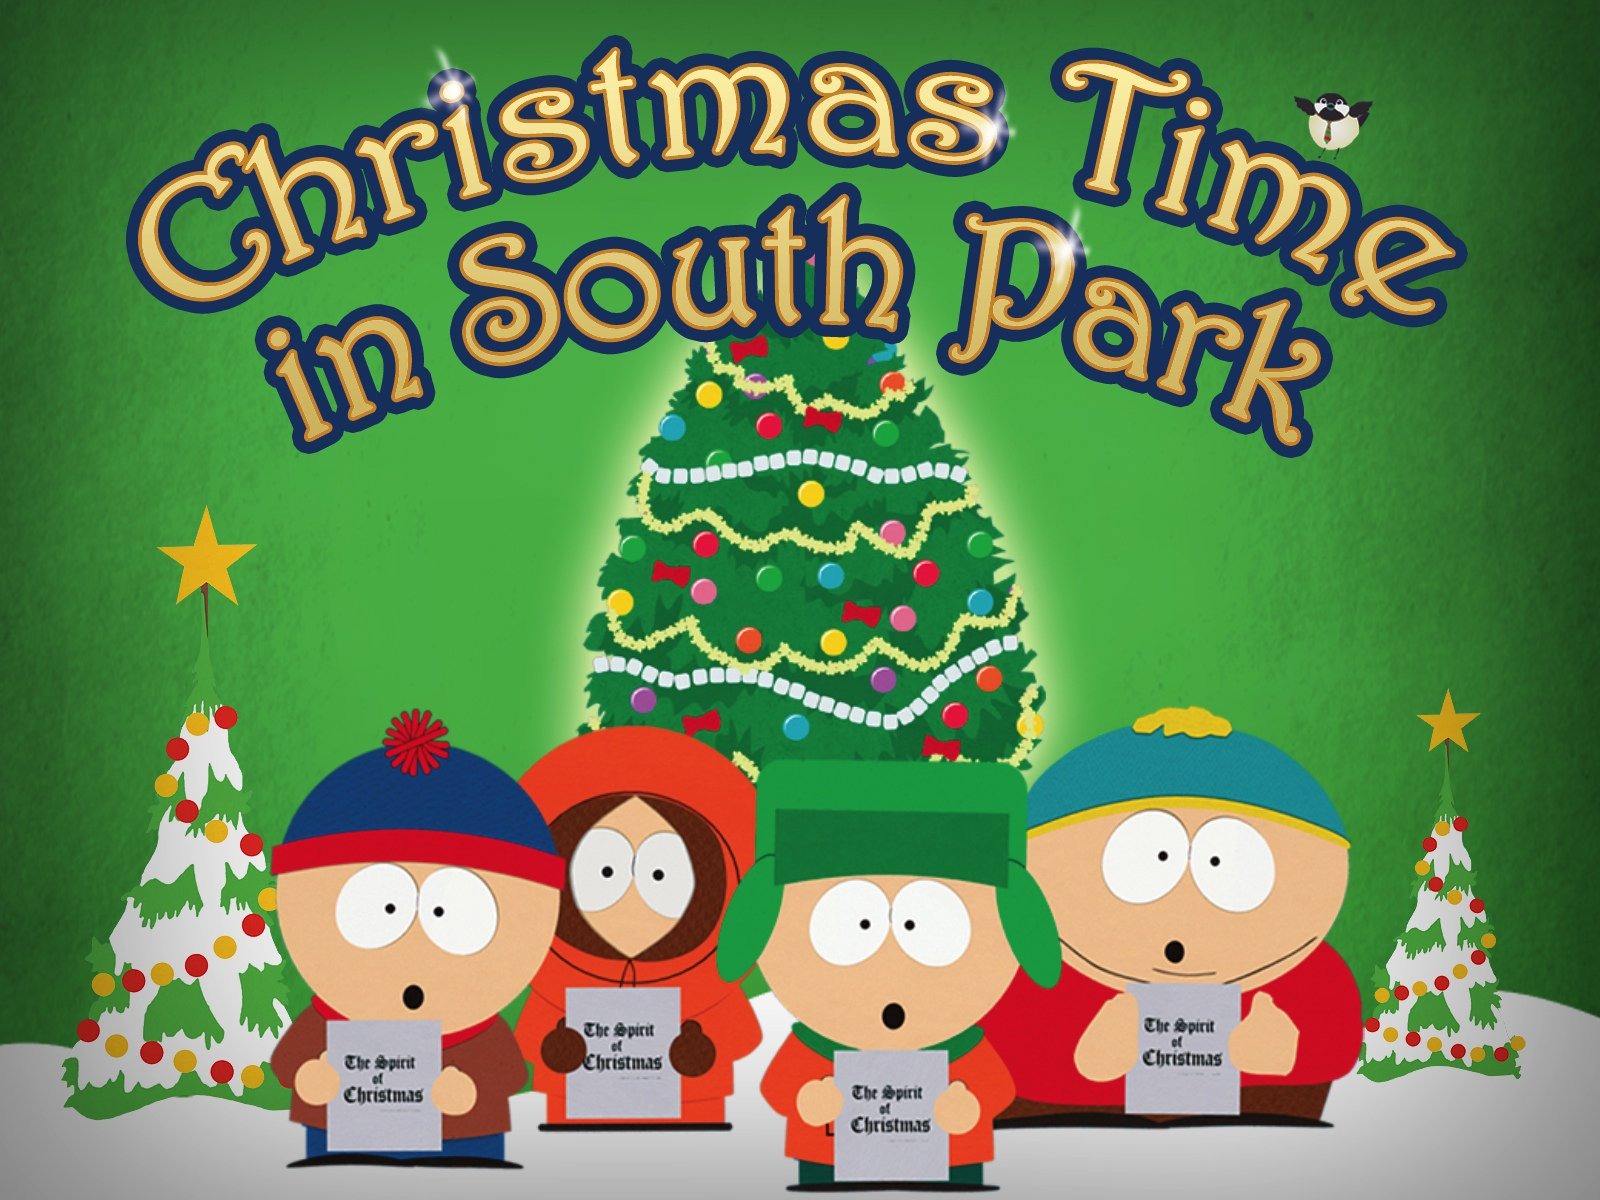 South Park Christmas.Amazon Com Watch Christmas Time In South Park Prime Video